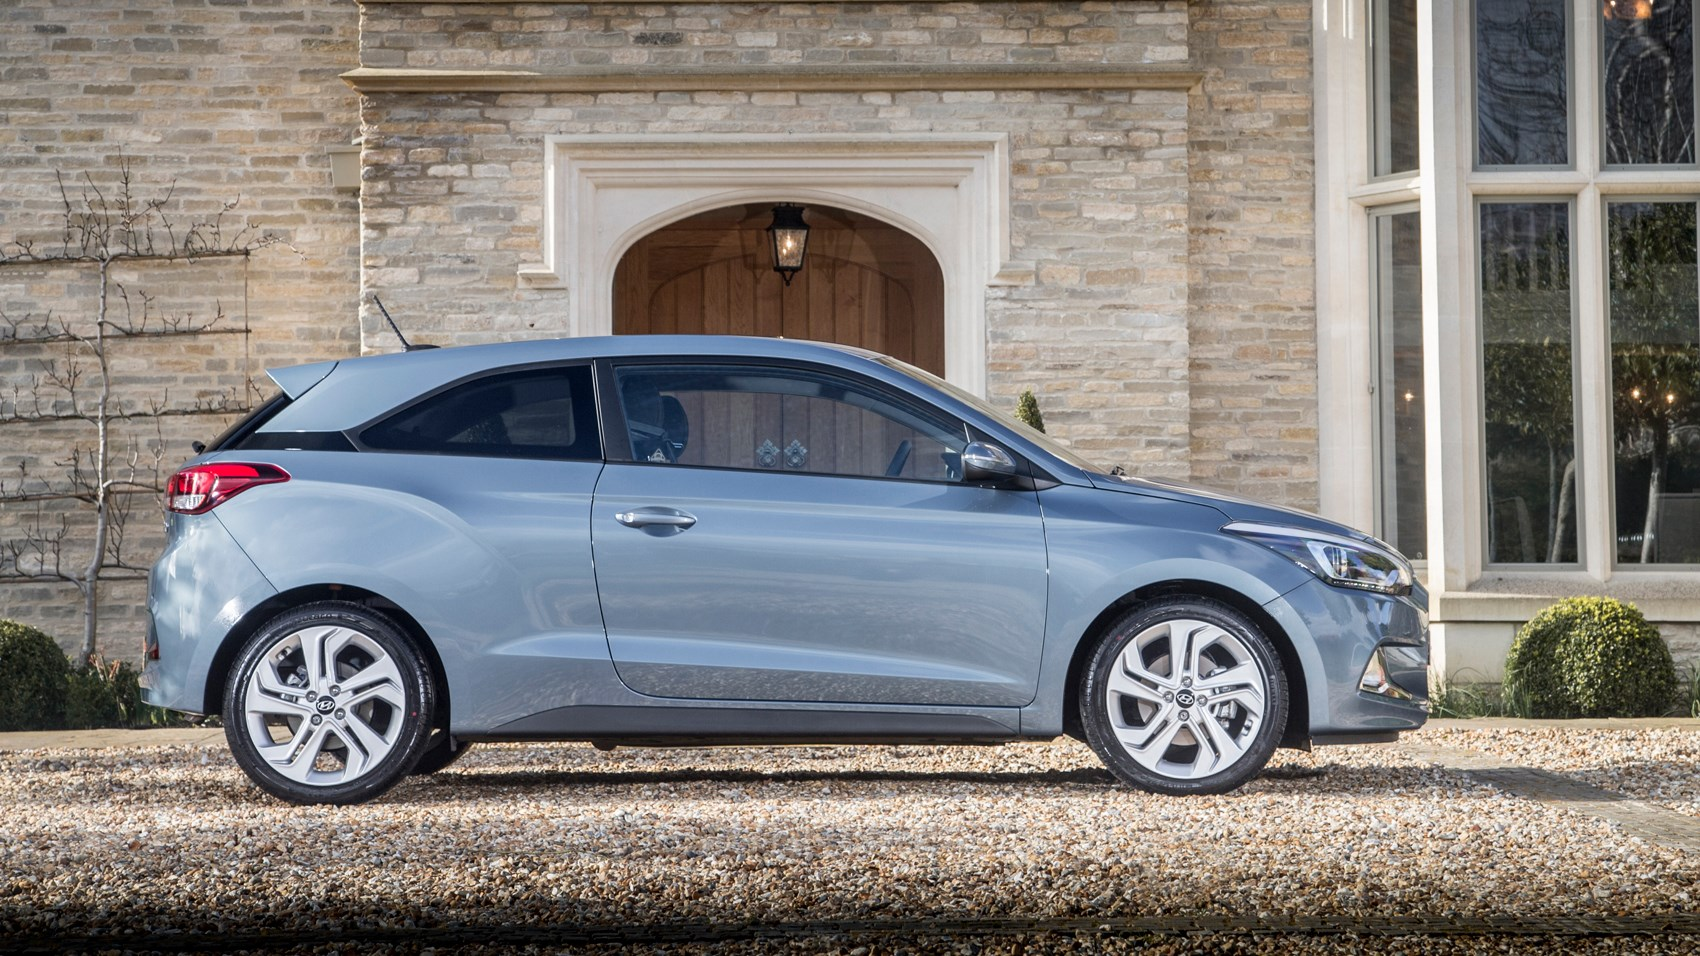 2011 hyundai i20 reviews specifications photos price -  Hyundai I20 Coupe 1 0 T Gdi 2016 Review